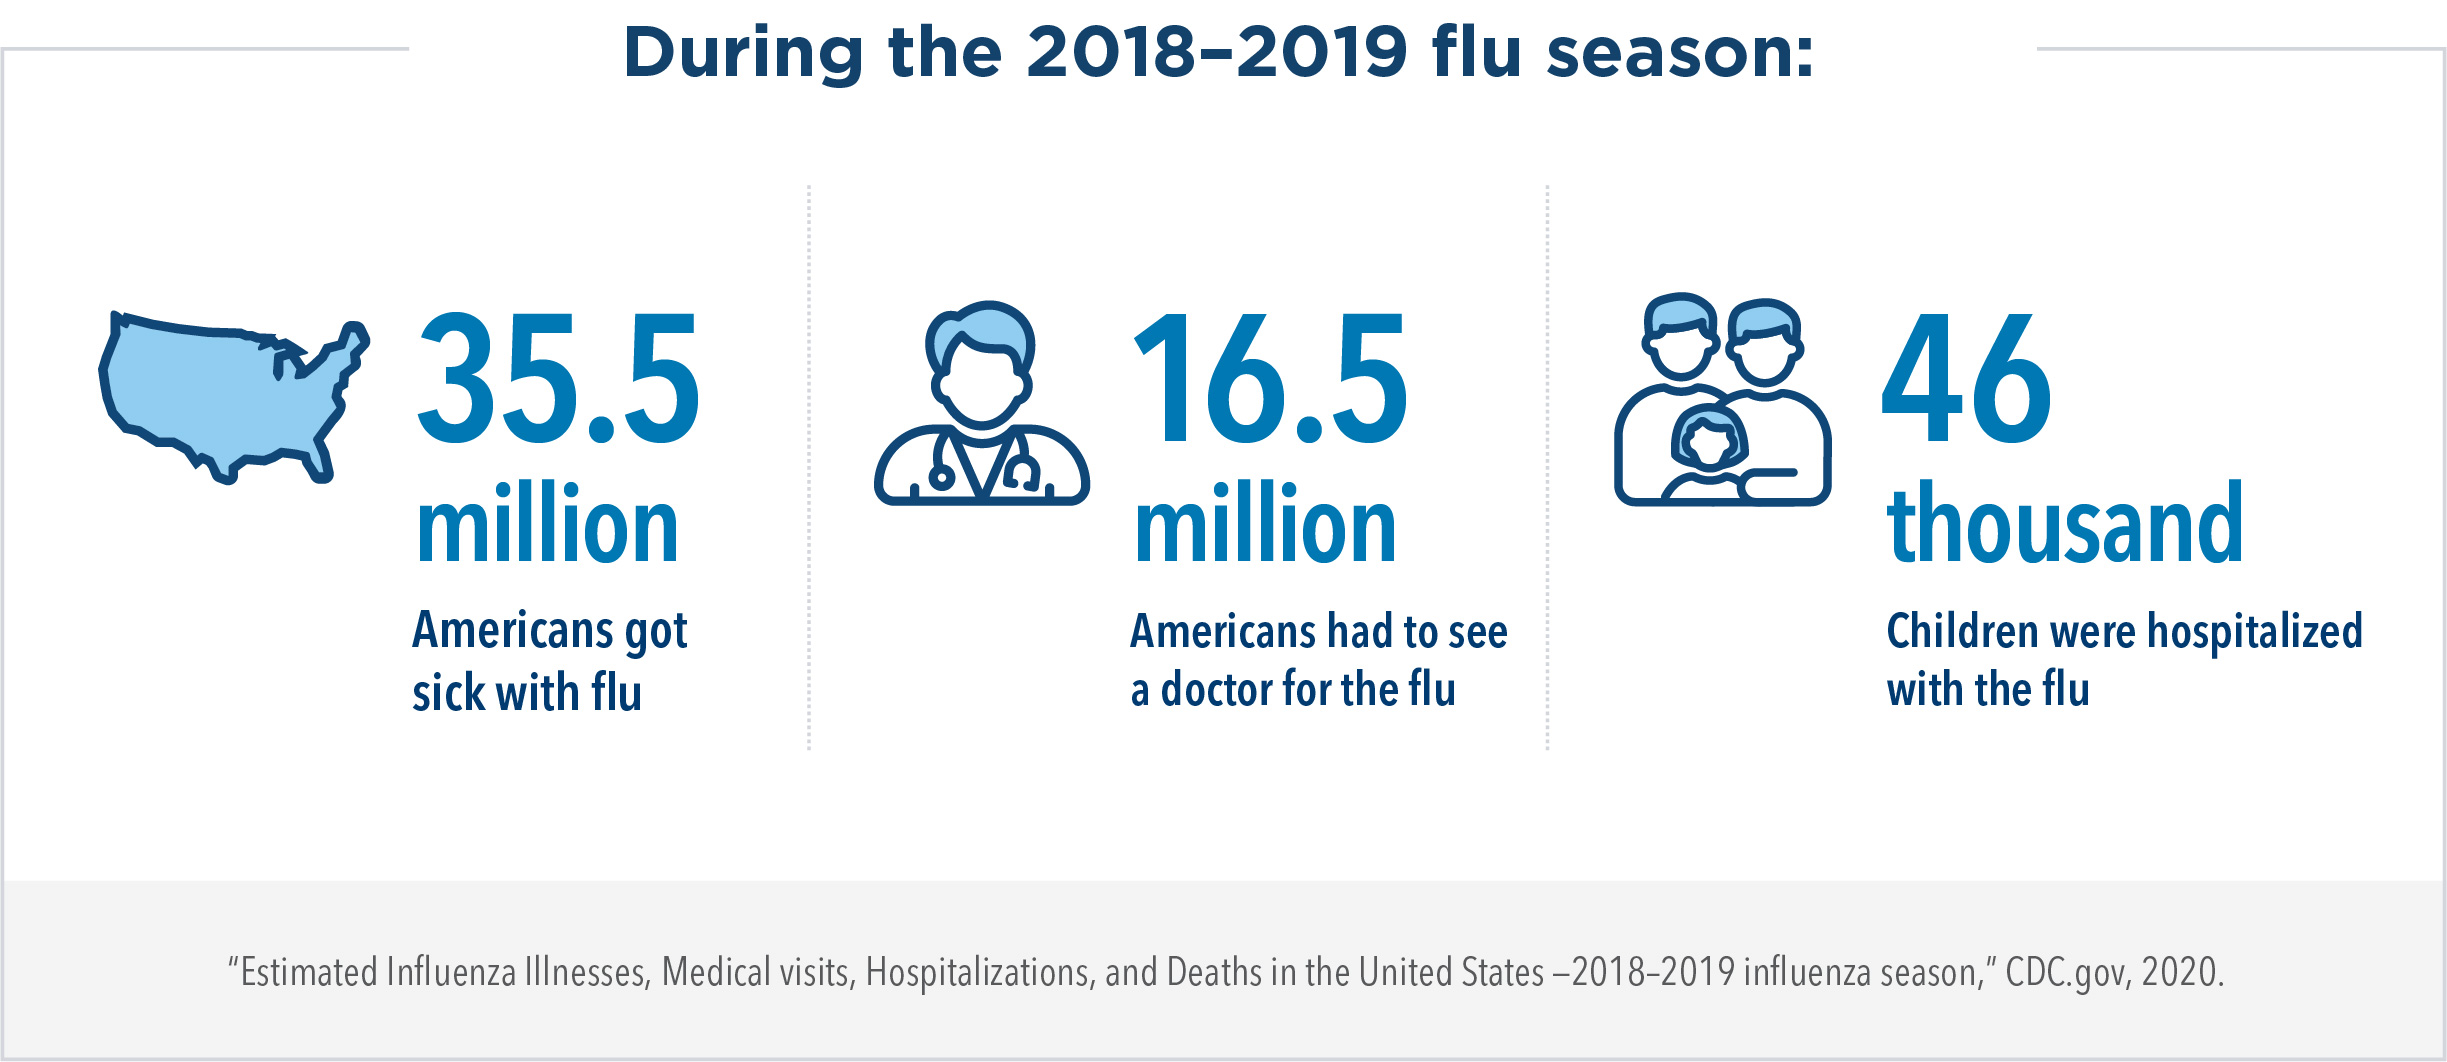 During the 2018-2019 flu season, 35.5 million Americans got sick with the flu, 16.5 million Americans had to see a doctor for the flu, and 46 thousand children were hospitalized with the flu.